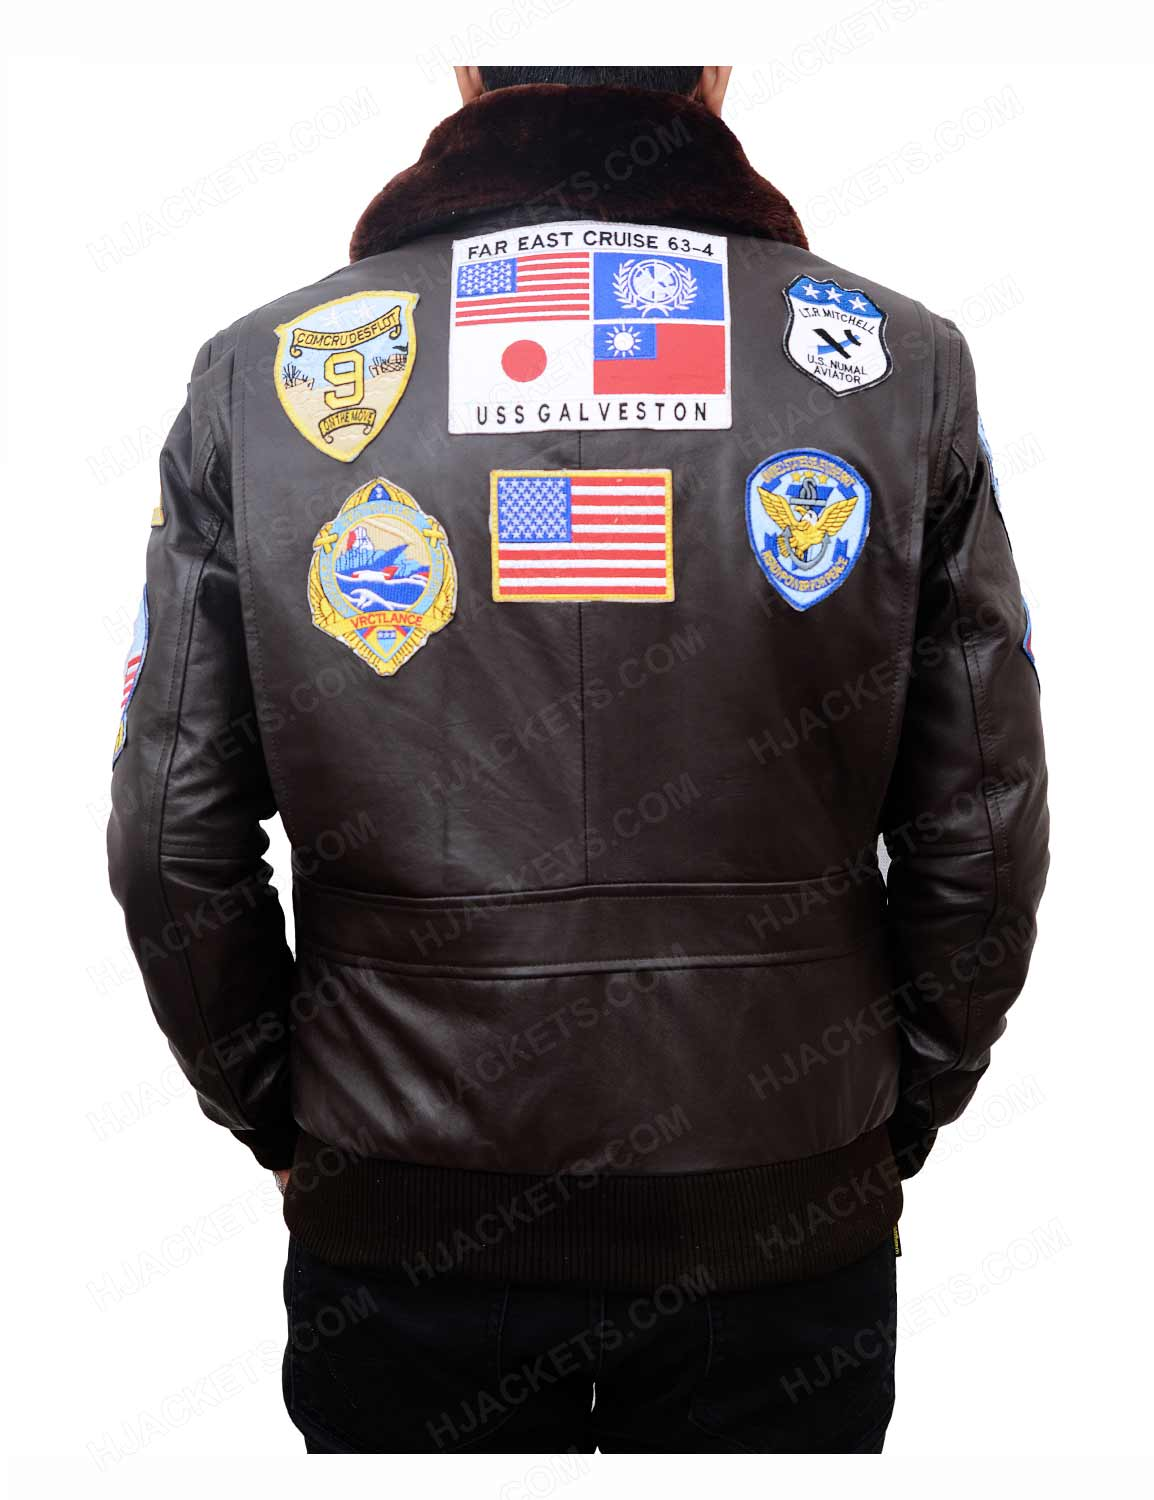 Top Gun Bomber Jacket | Tom Cruise Flight - Hjackets